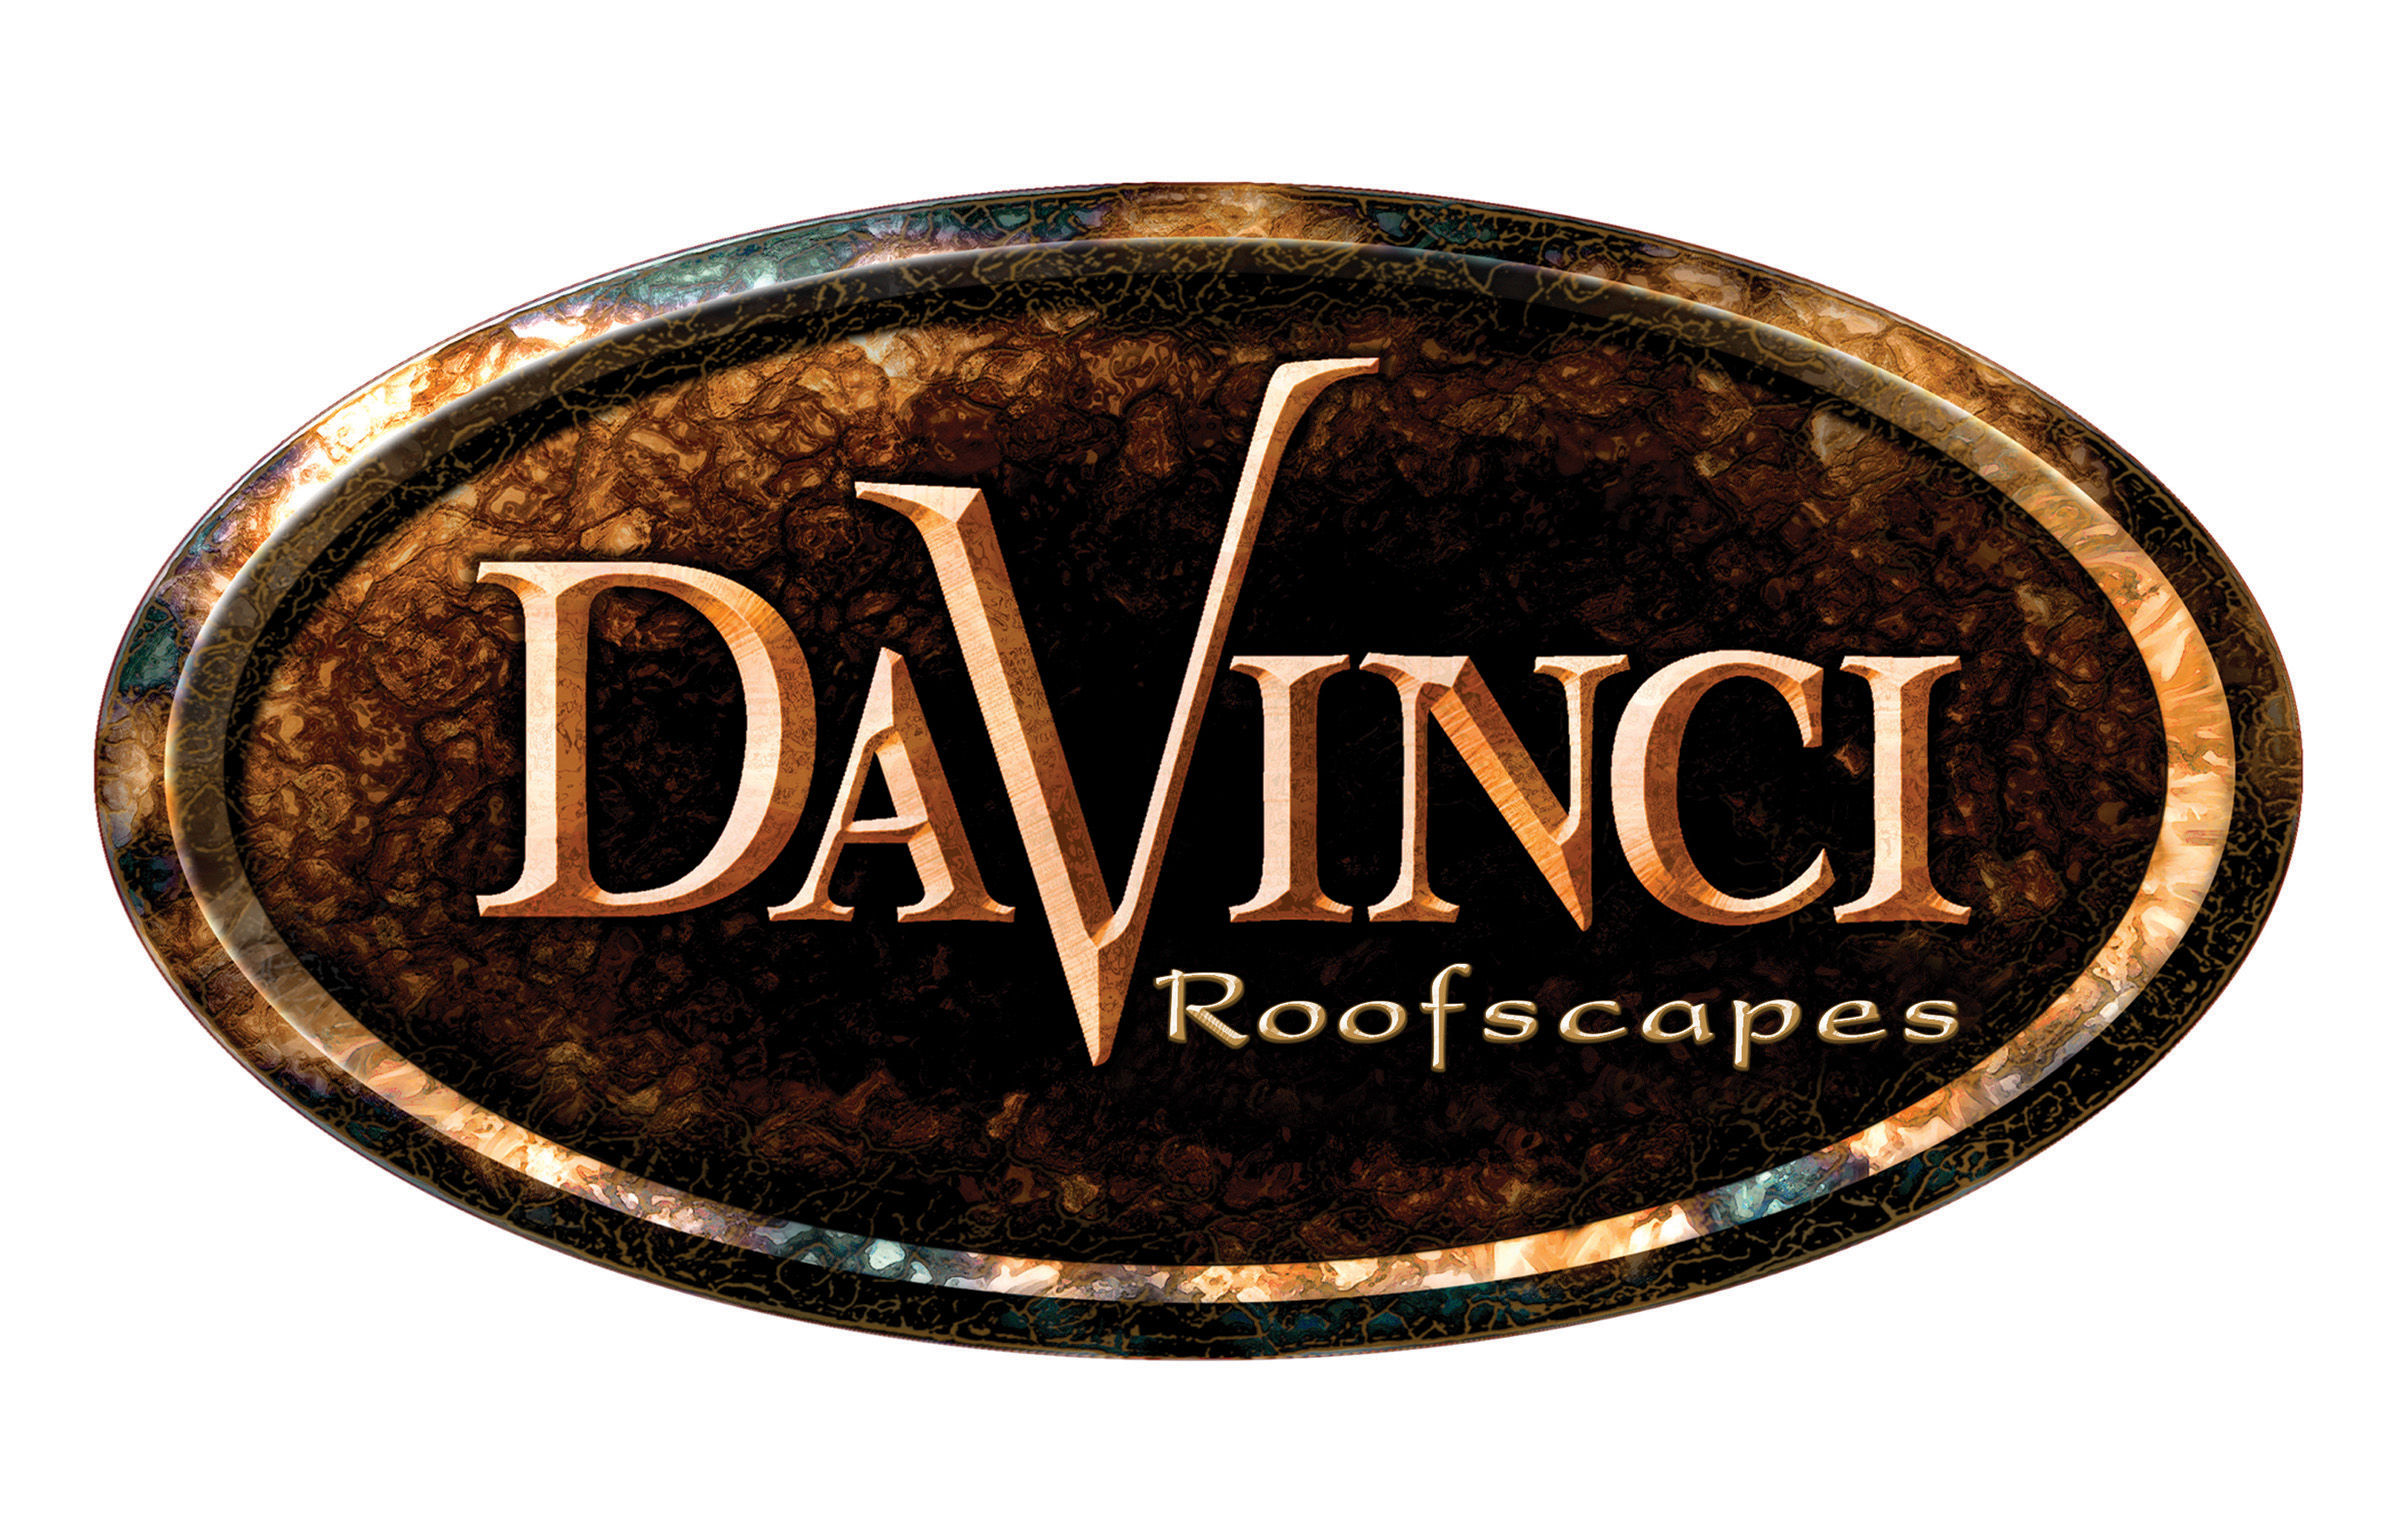 Davinci Roofscapes Product Reference Page